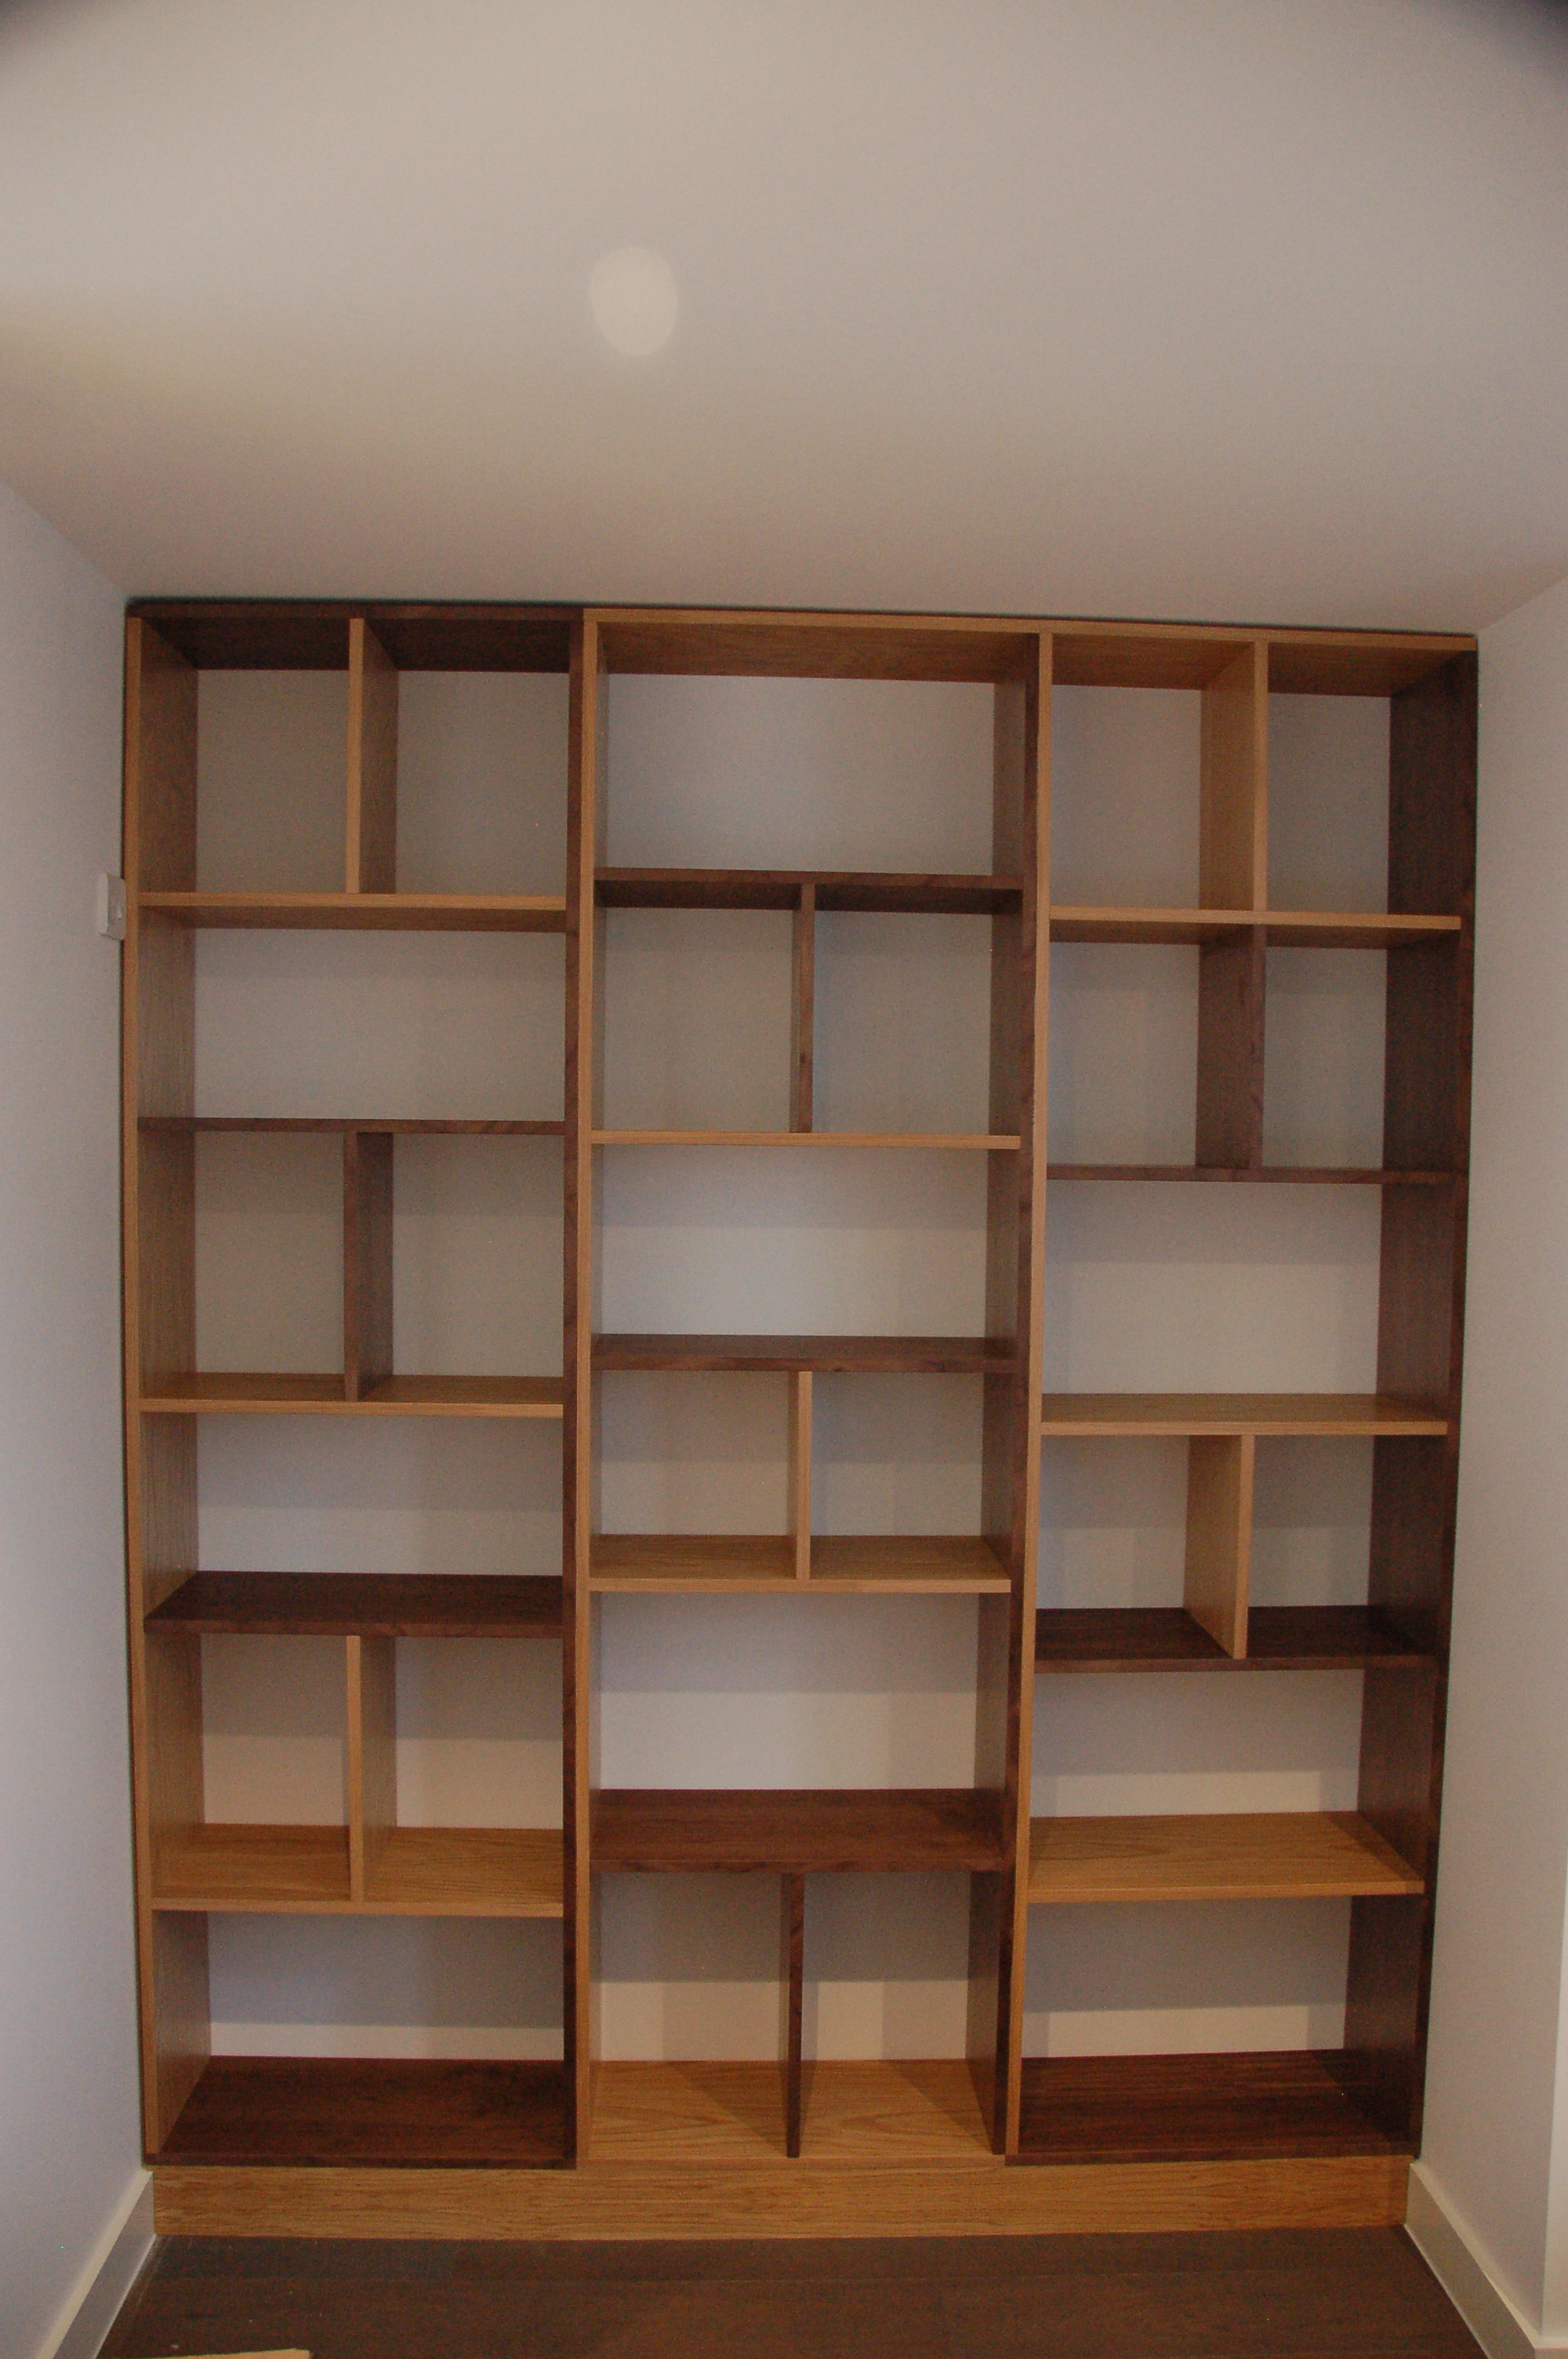 Design Contemporary Shelving contemporary shelving contemporist modern book cases in oak units 3 of 15